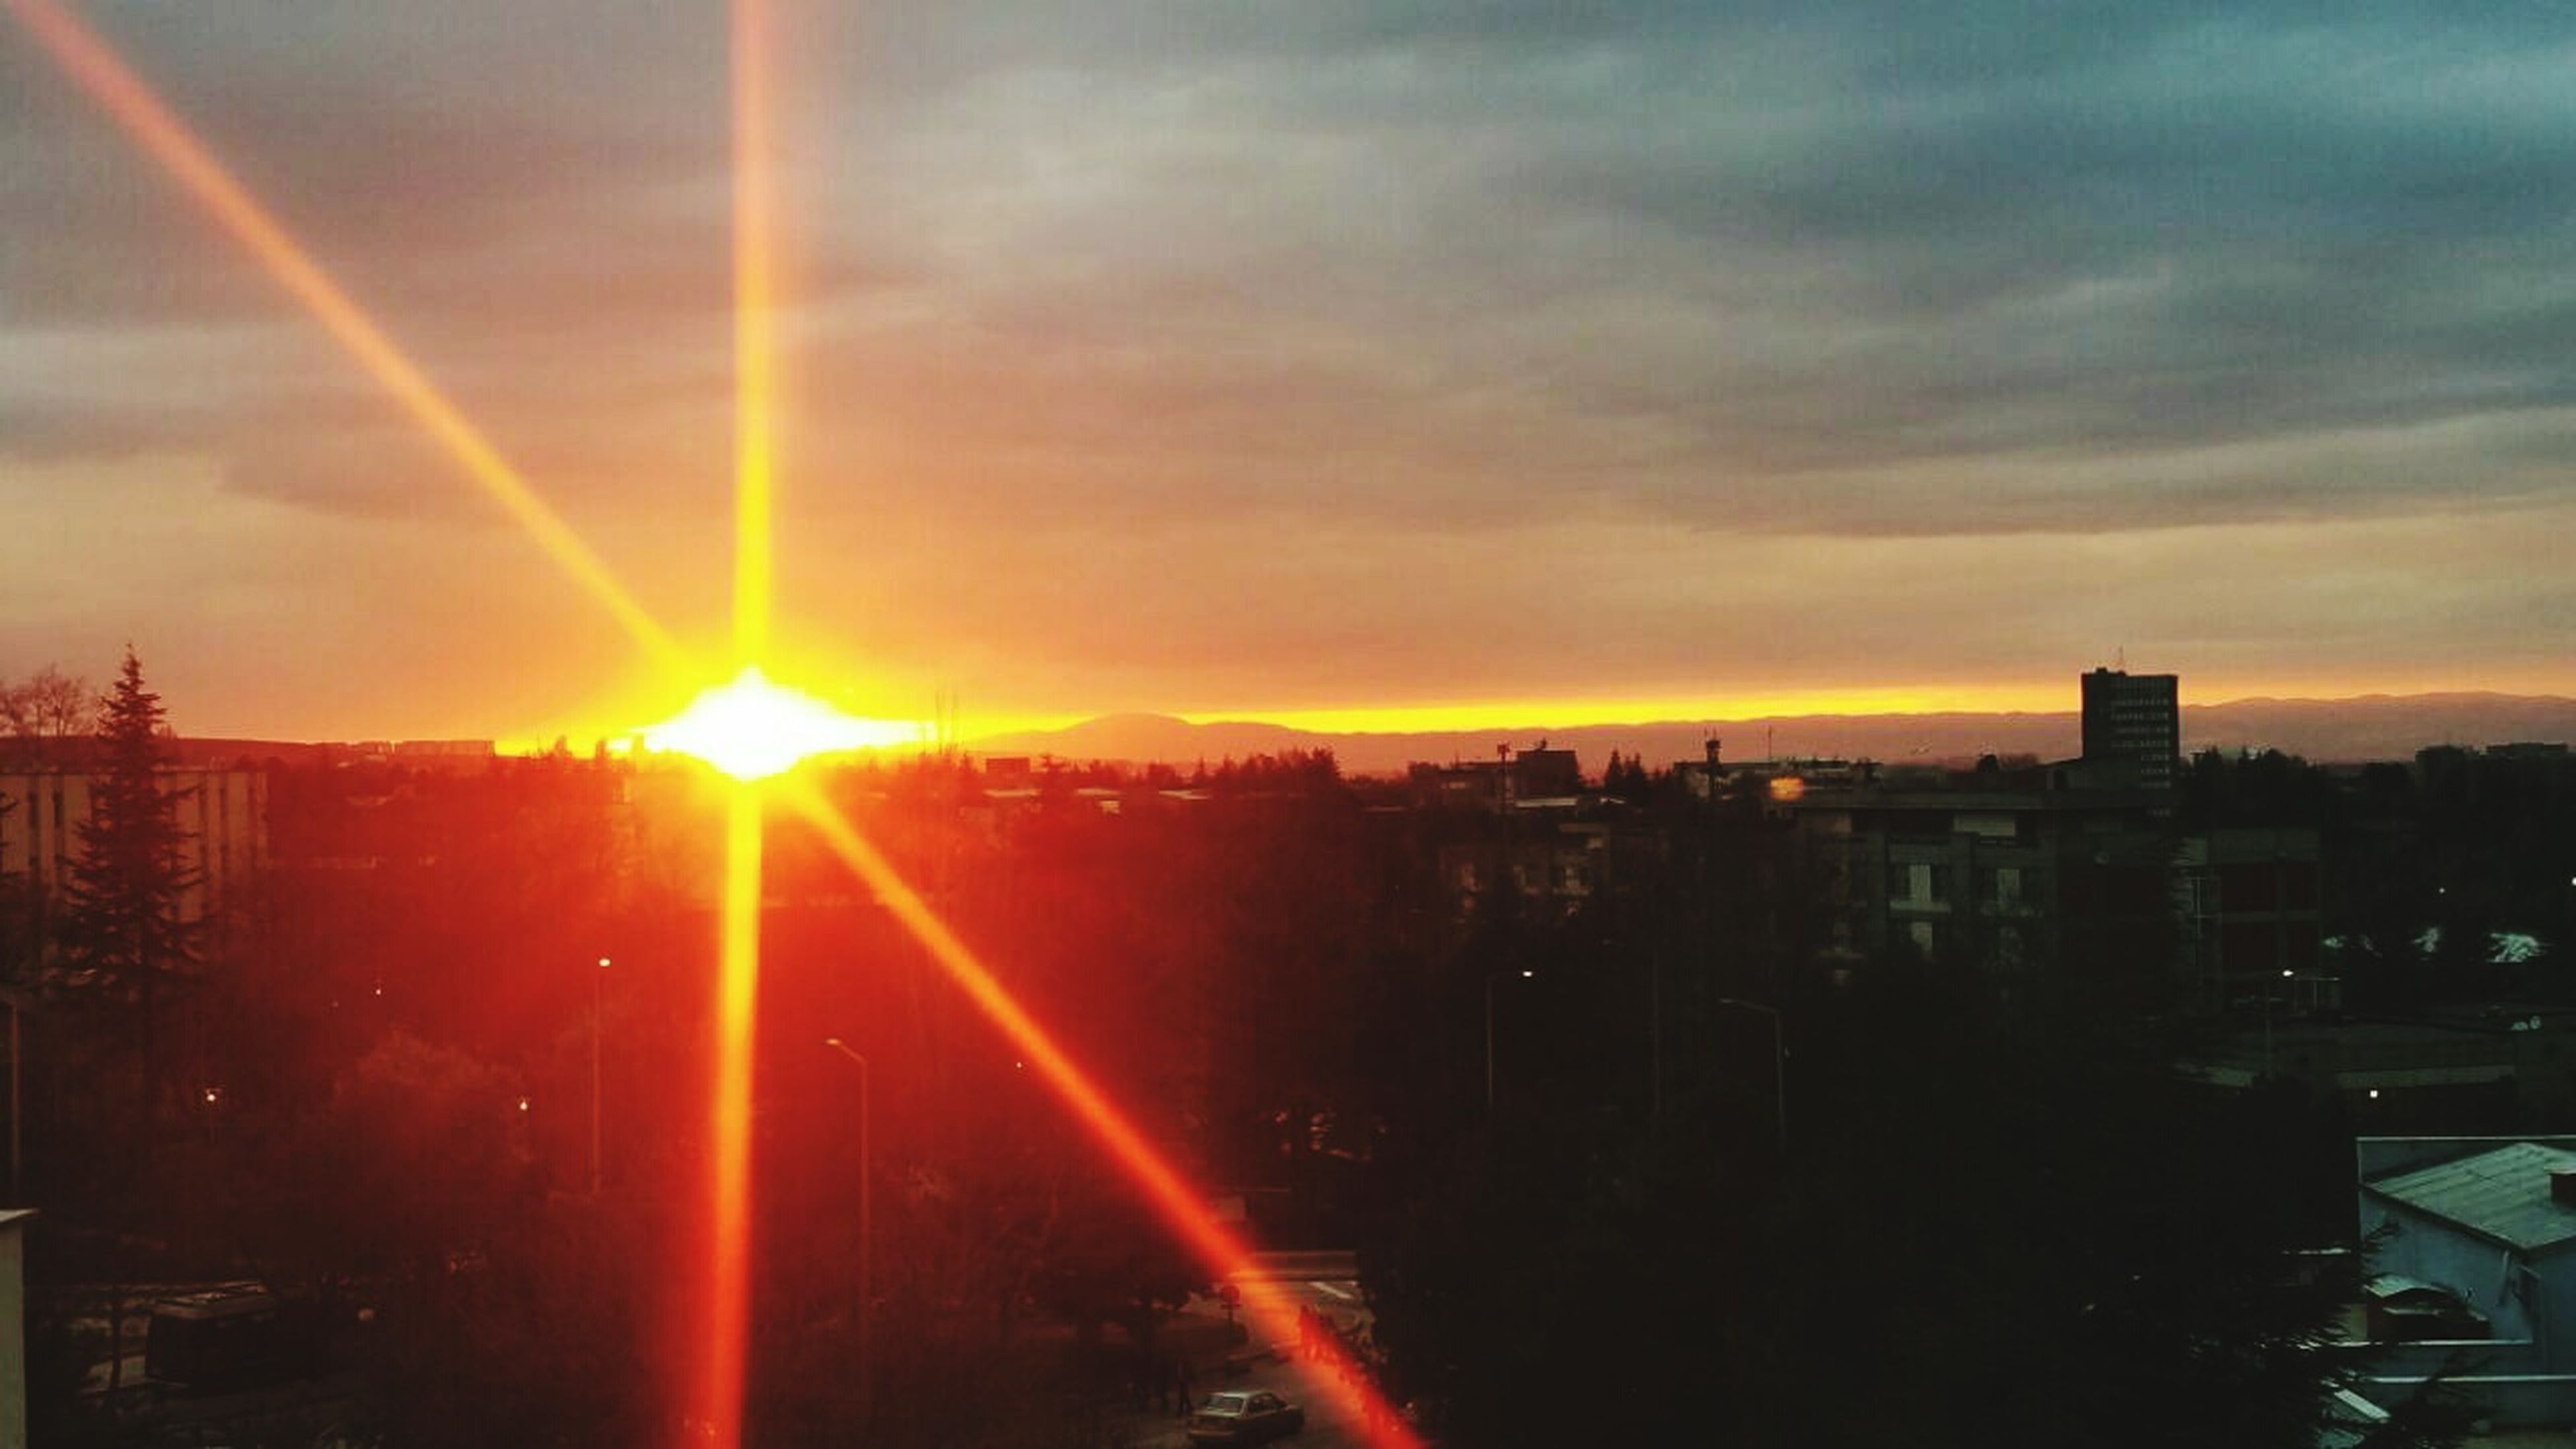 This view gives me happiness more than any other thing can provide... Sunset Campus Life Cityofsurvival Ankara/turkey Dormitory Life Dear foreign friends from all over the world..Eventhough this city and this country is going through really tough times;the sun still shines perfectly as it always have been.We are still proud and still in love with our country. I know, many people don't care about us but i also know that there are the ones with really good heart,conscience and humanity inside. Prayforankara ❤